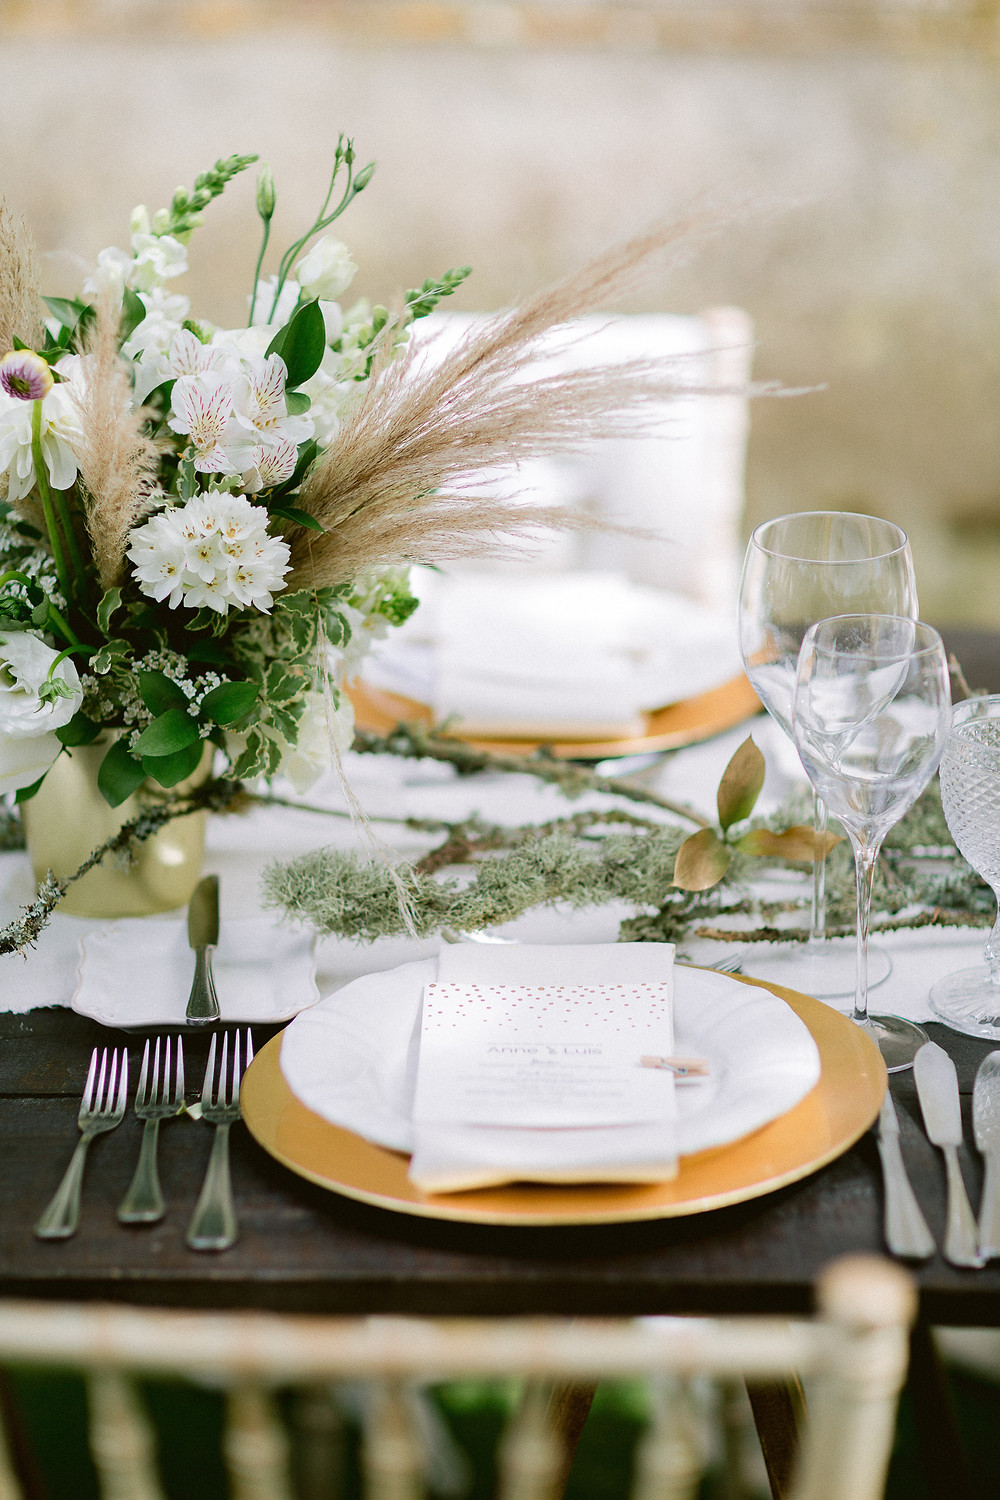 Wedding centrepieces decorated with pampas grass for your rustic wedding in Portugal